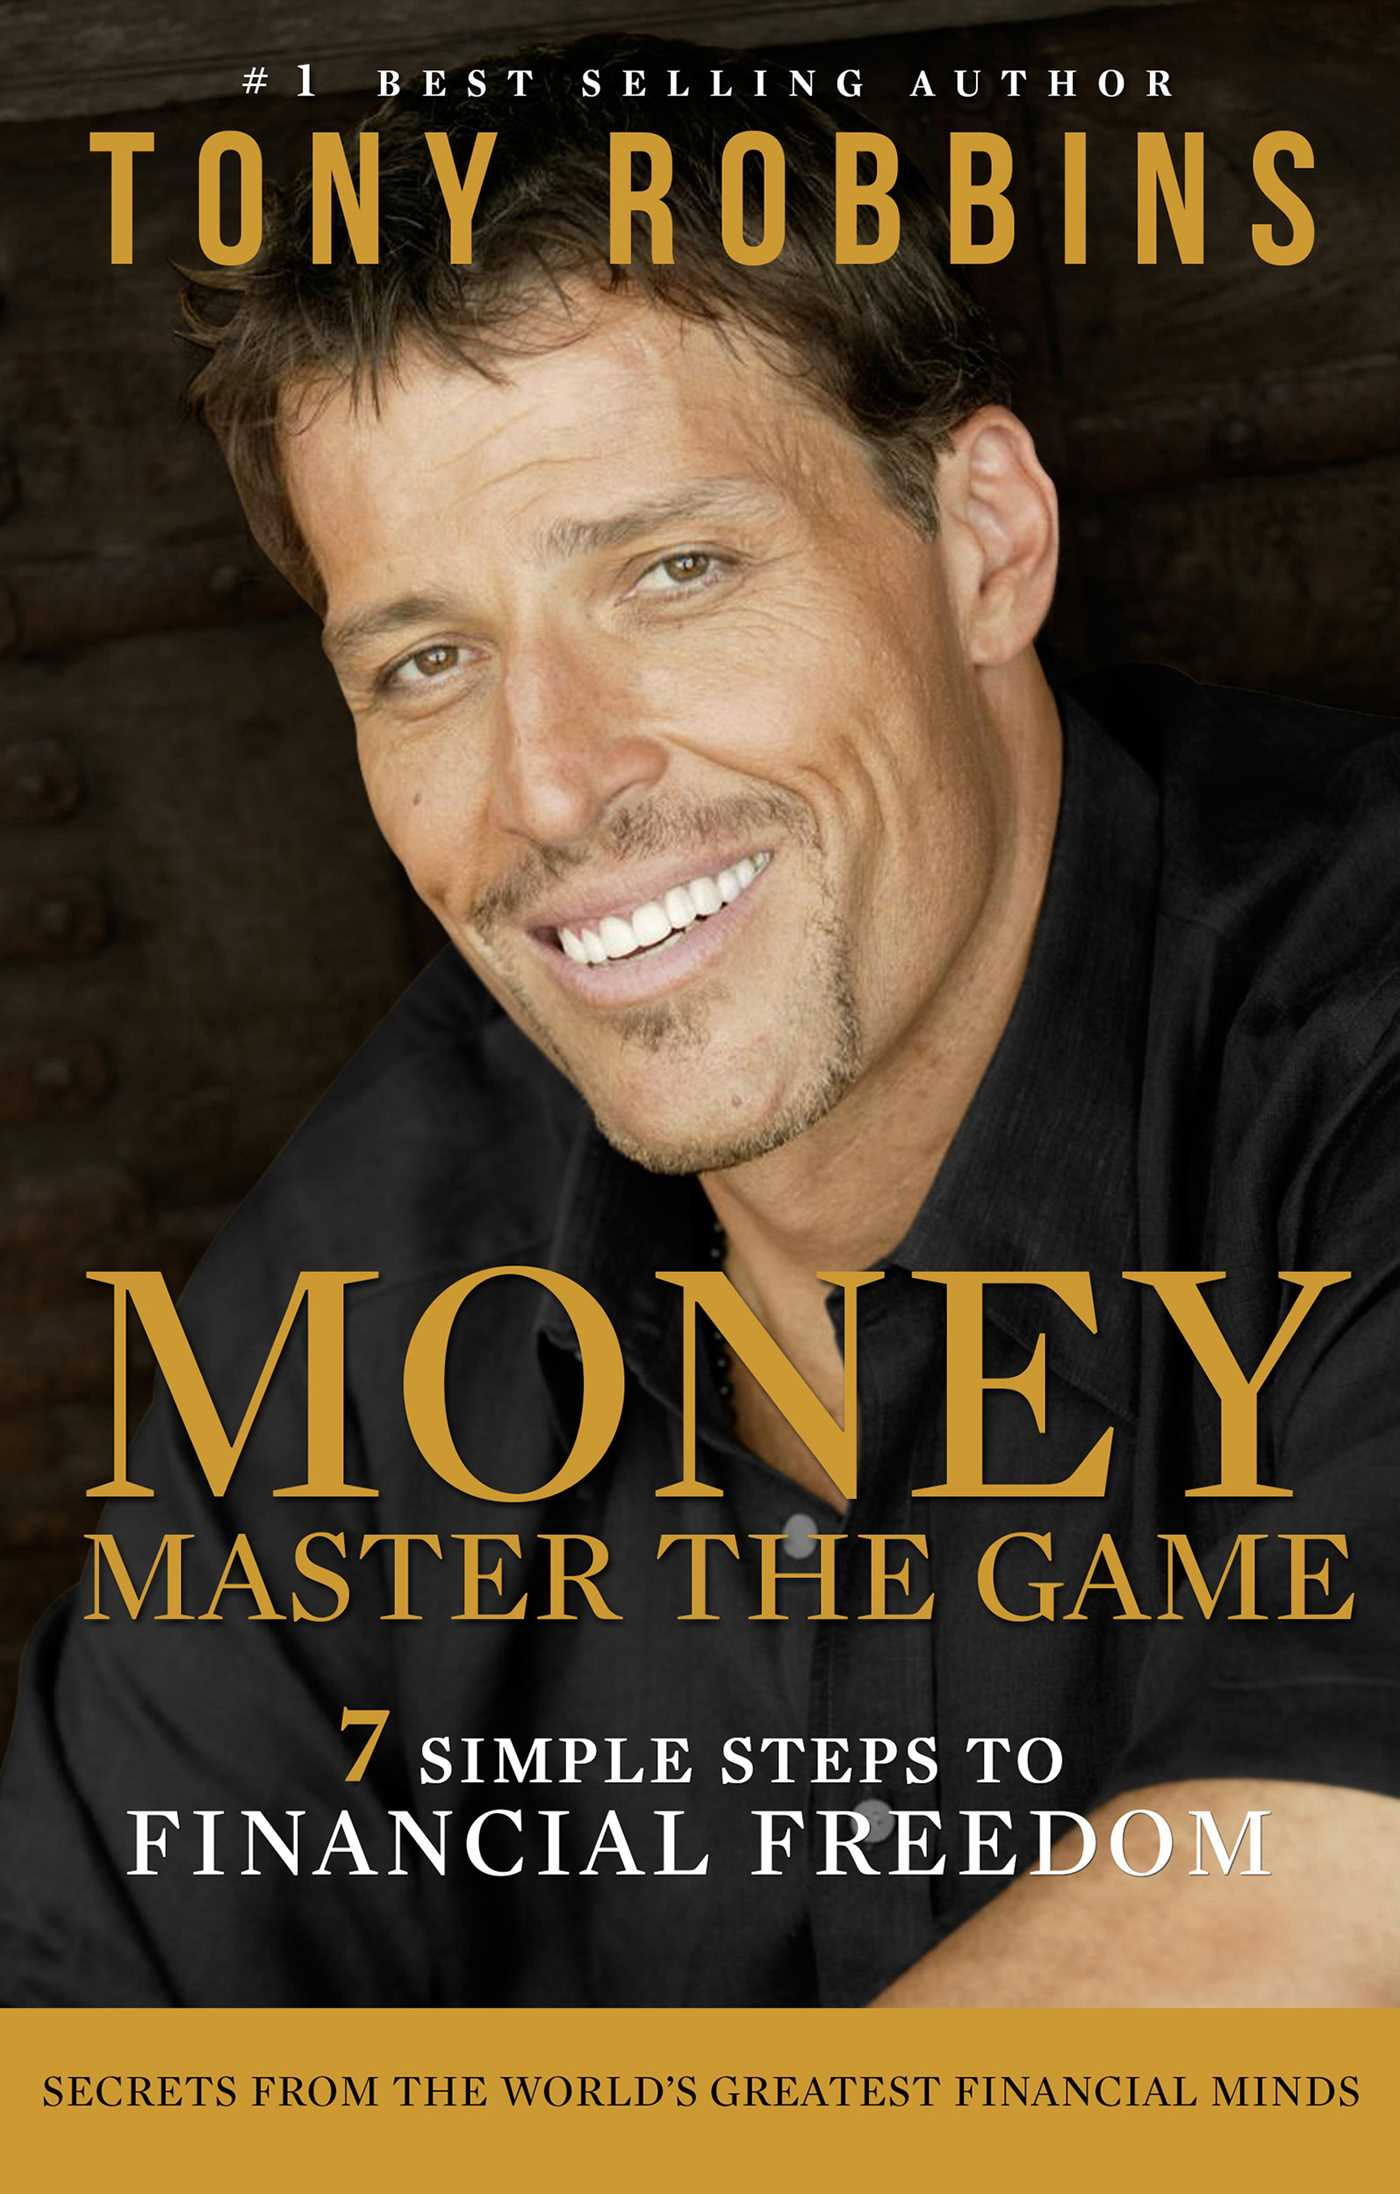 Money master the game 9781471148620 hr